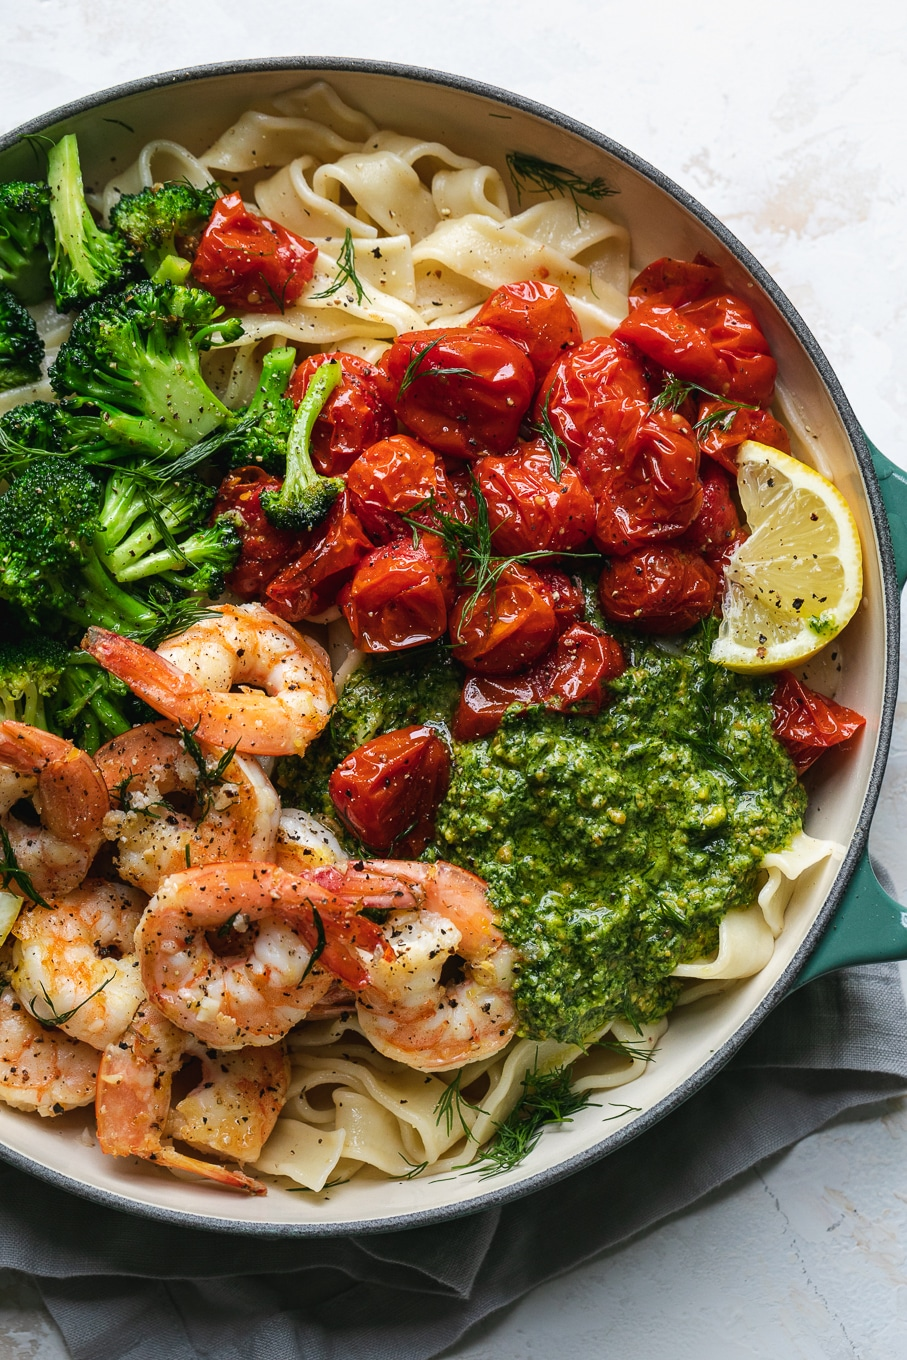 Overhead shot of a pan filled with piles of veggies, shrimp and pesto over pasta